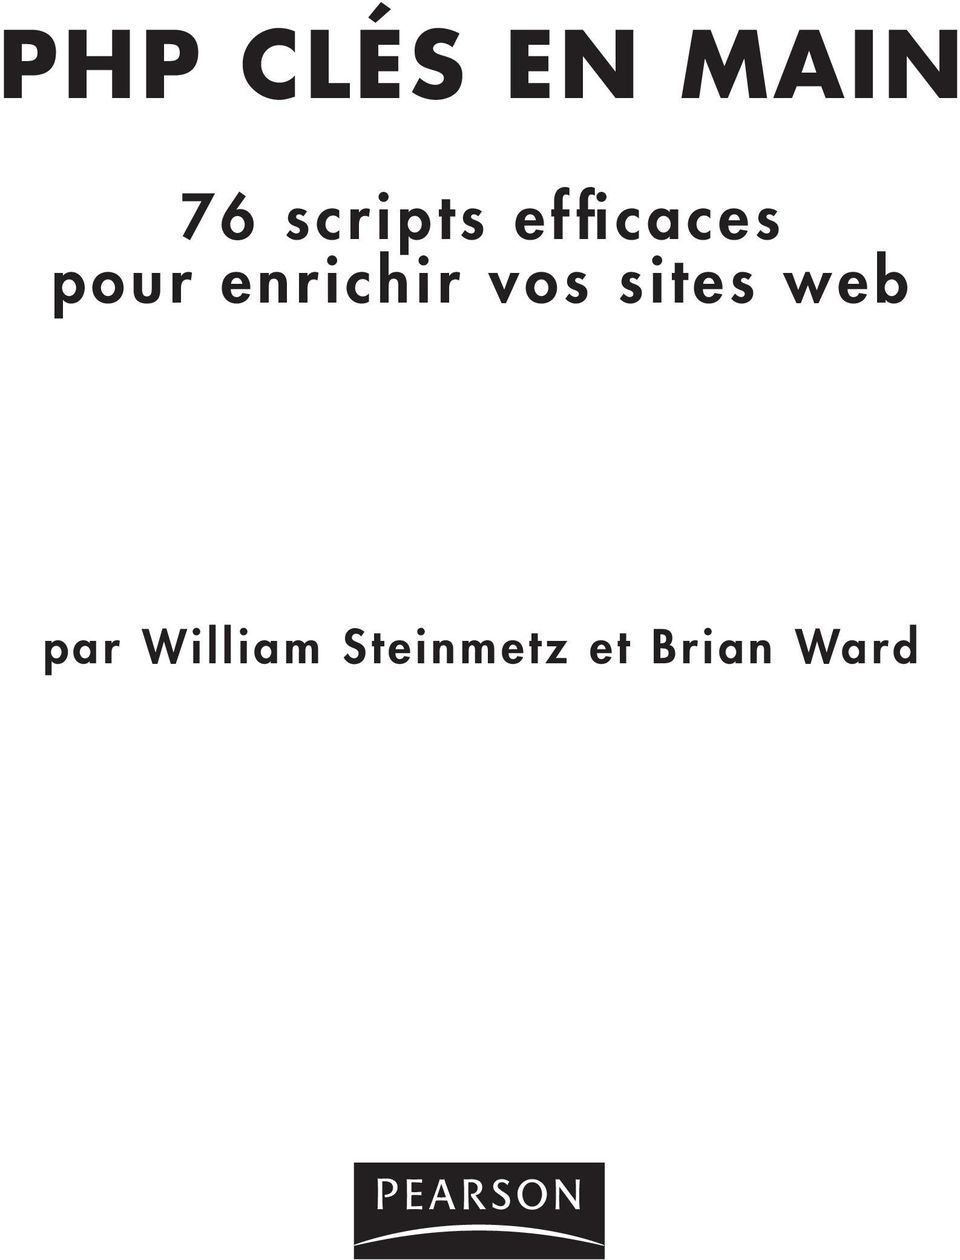 enrichir vos sites web